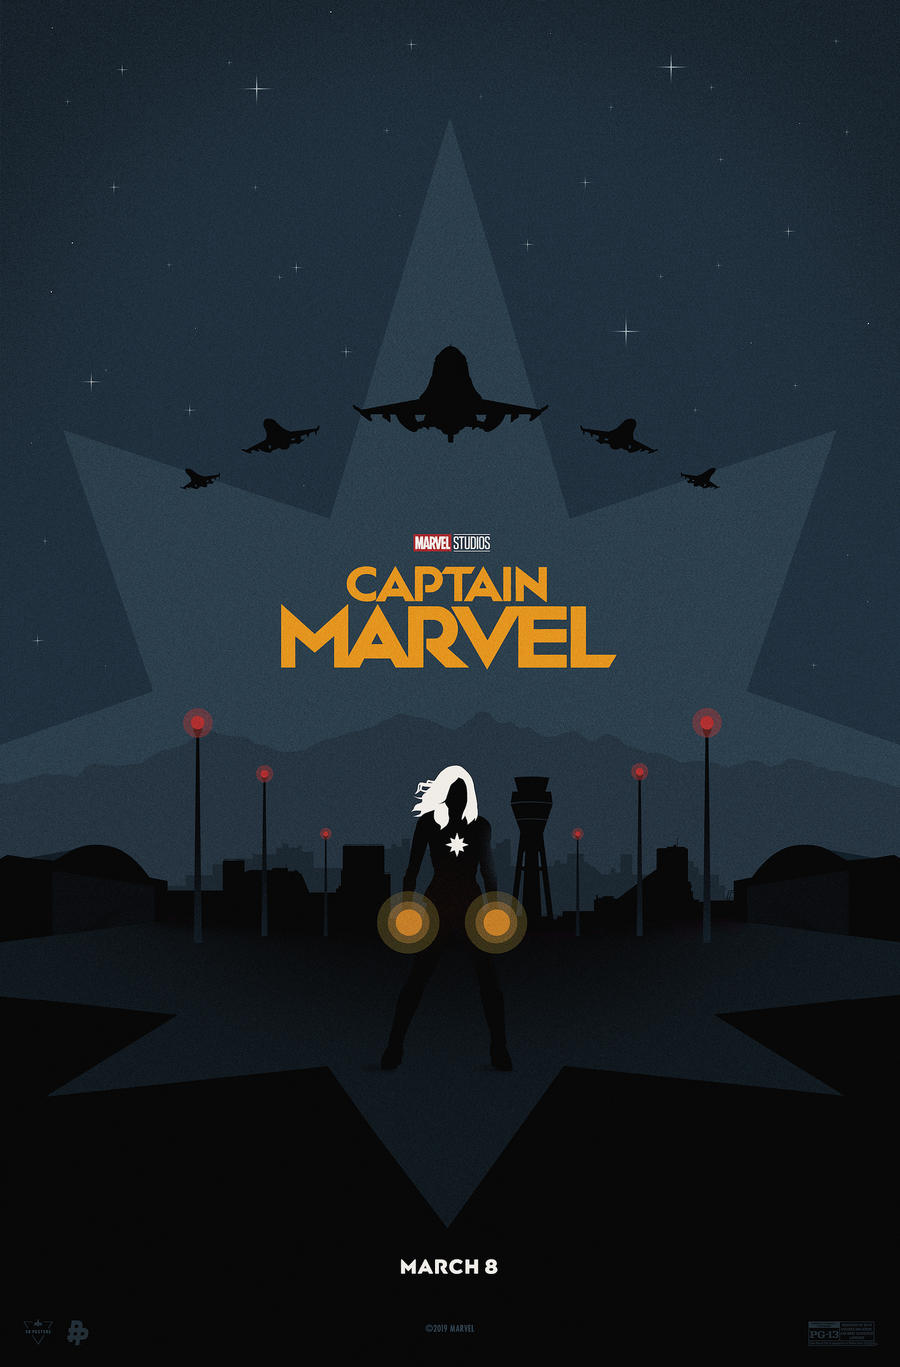 Captain Marvel Poster Art by Eileen Steinbach